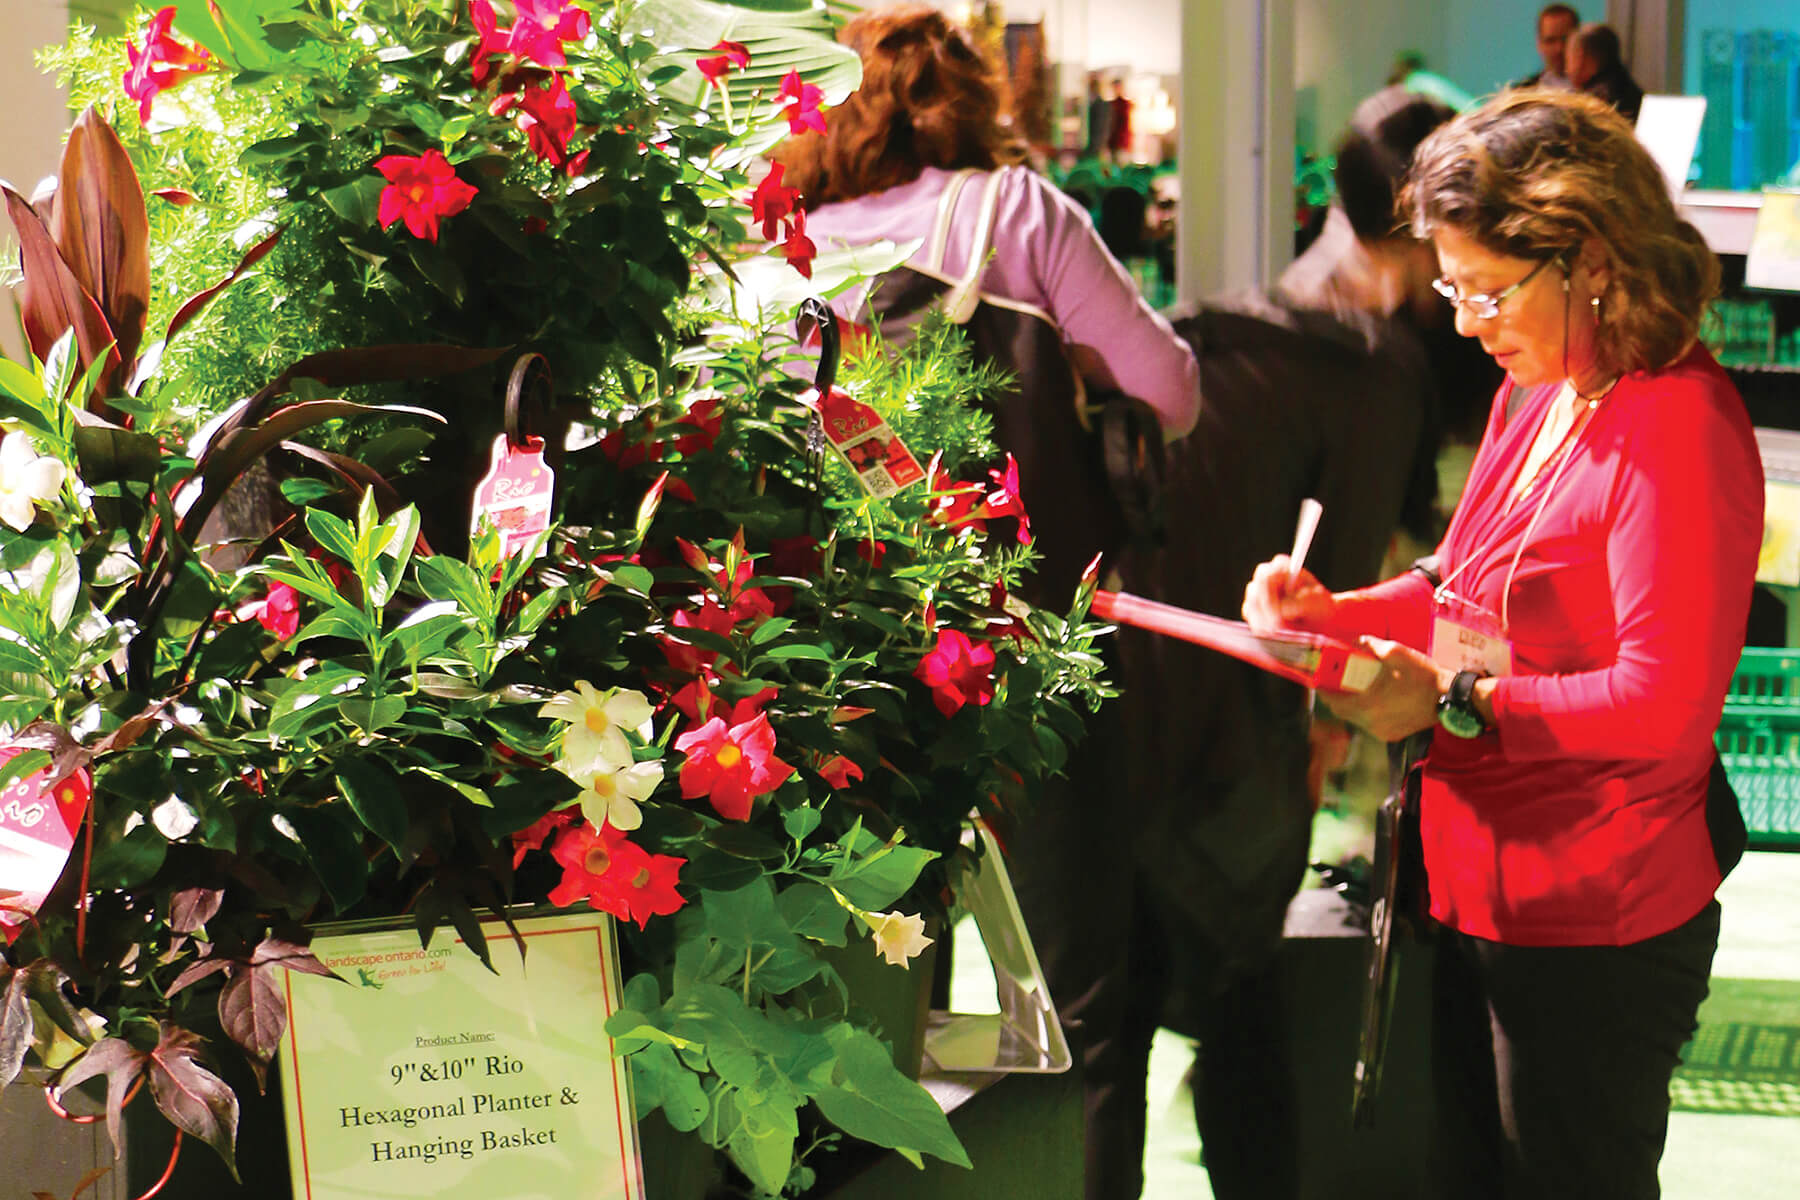 woman with a clipboard evaluating a large floral display